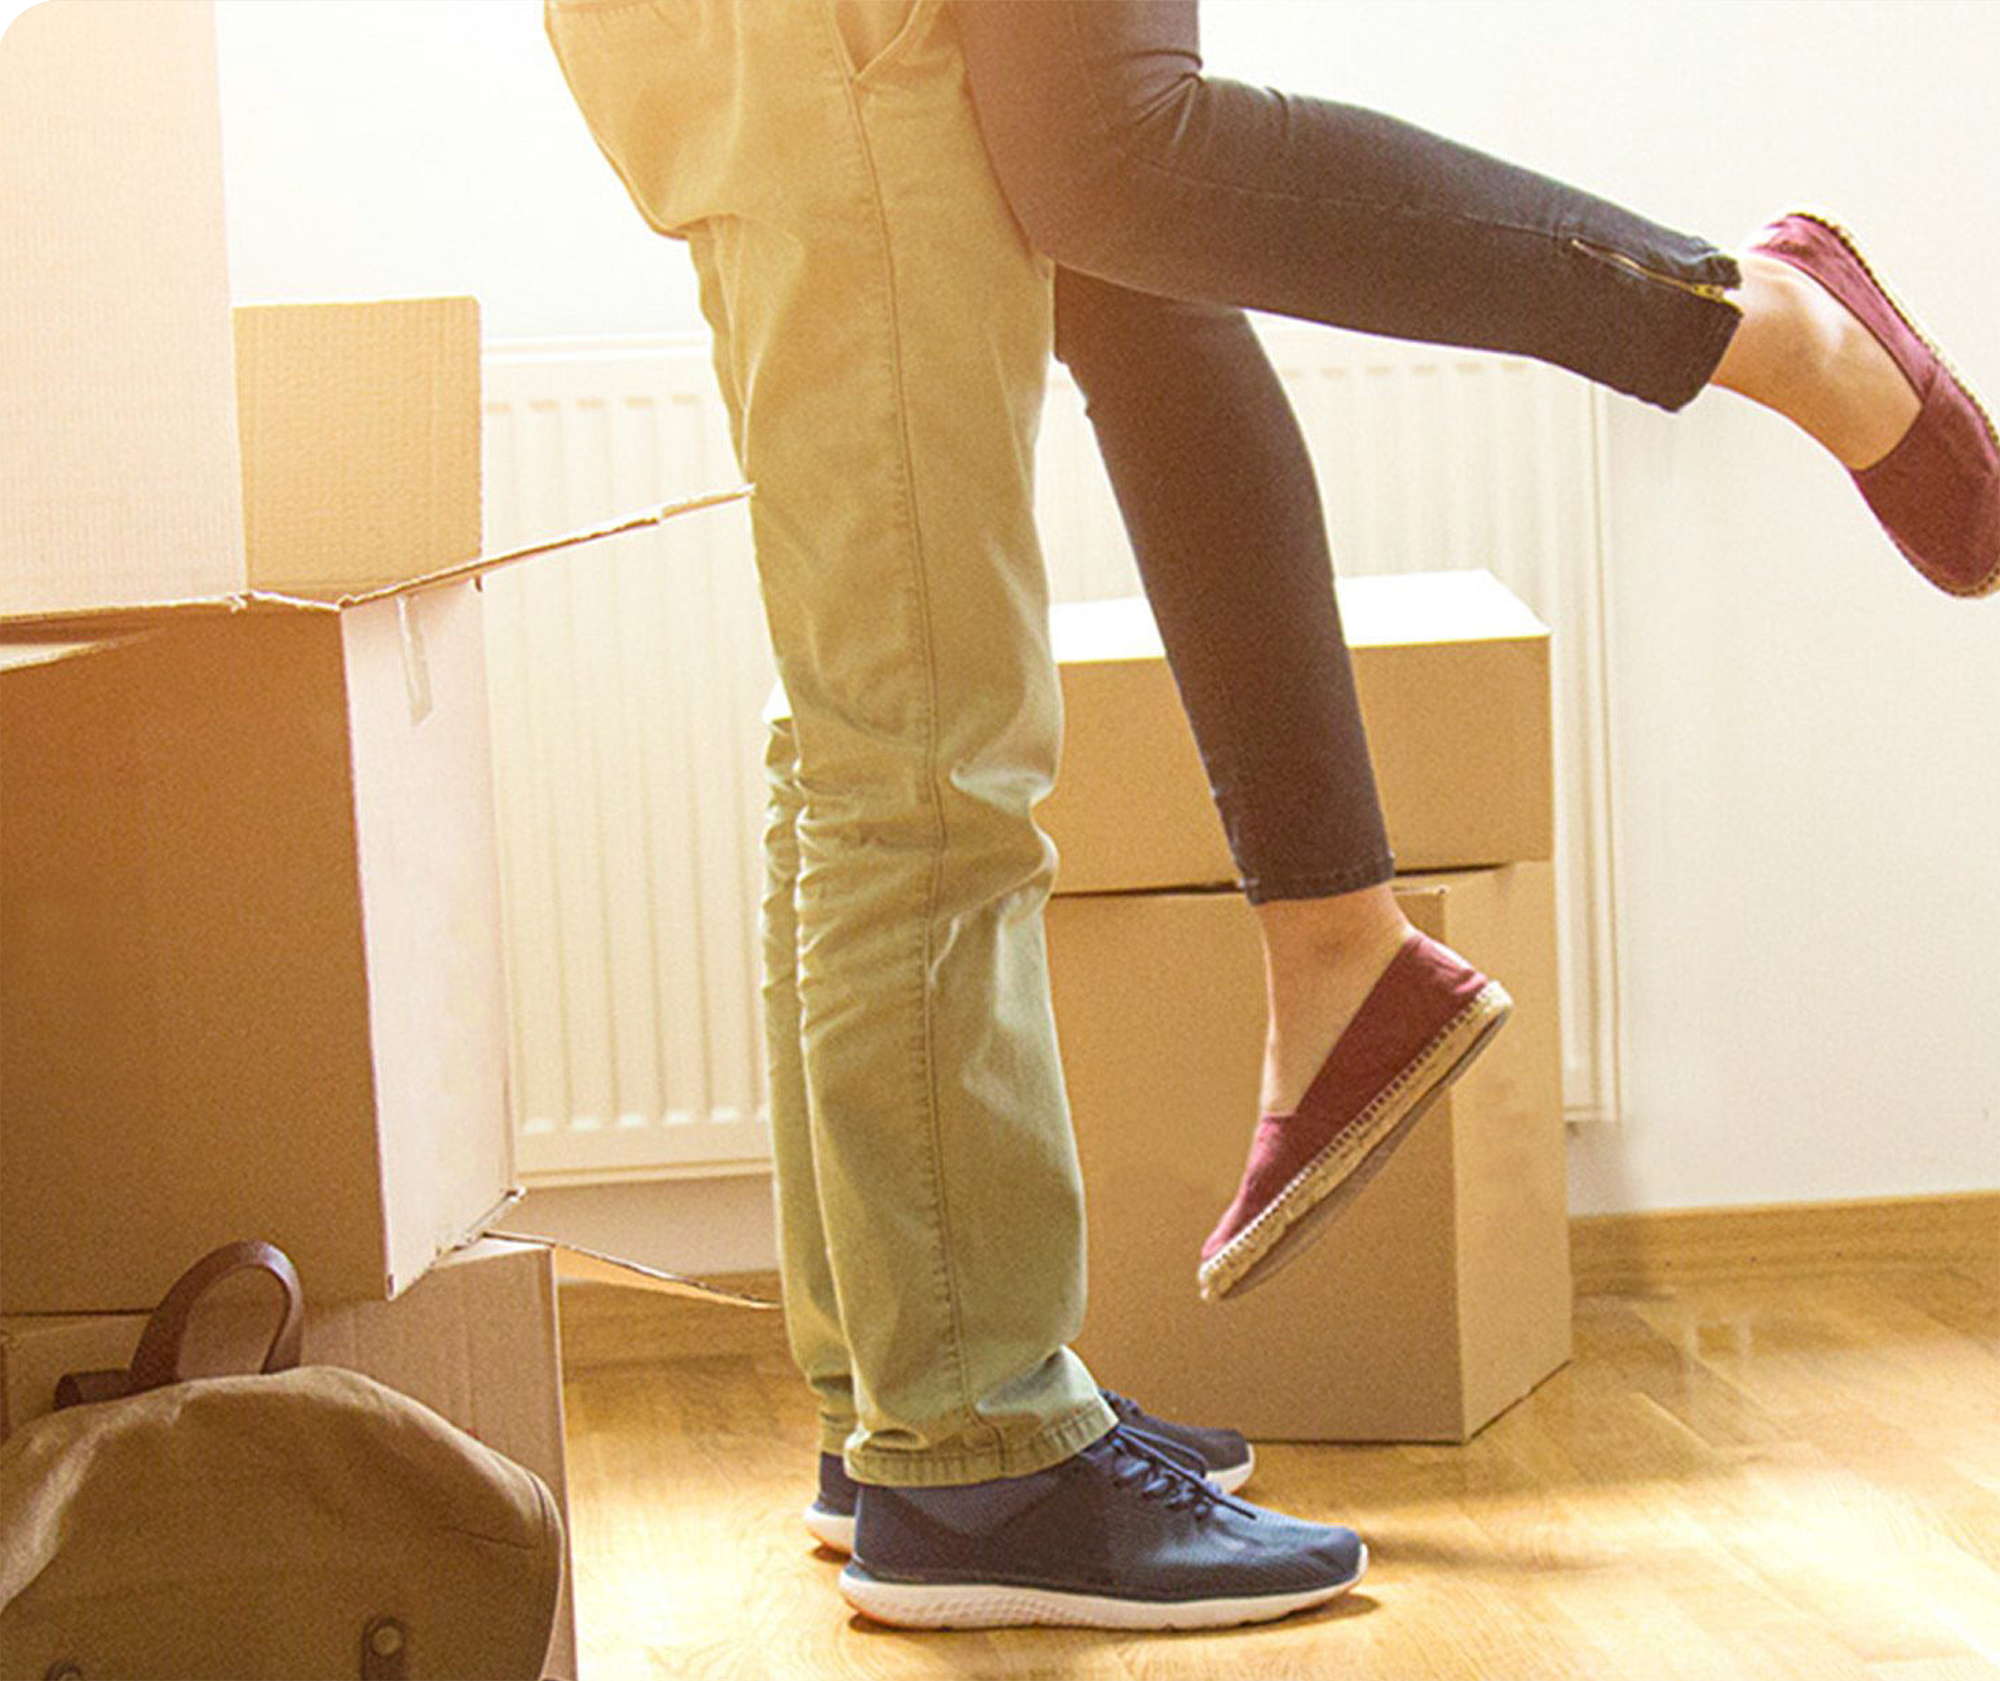 Taking the stress out of moving home